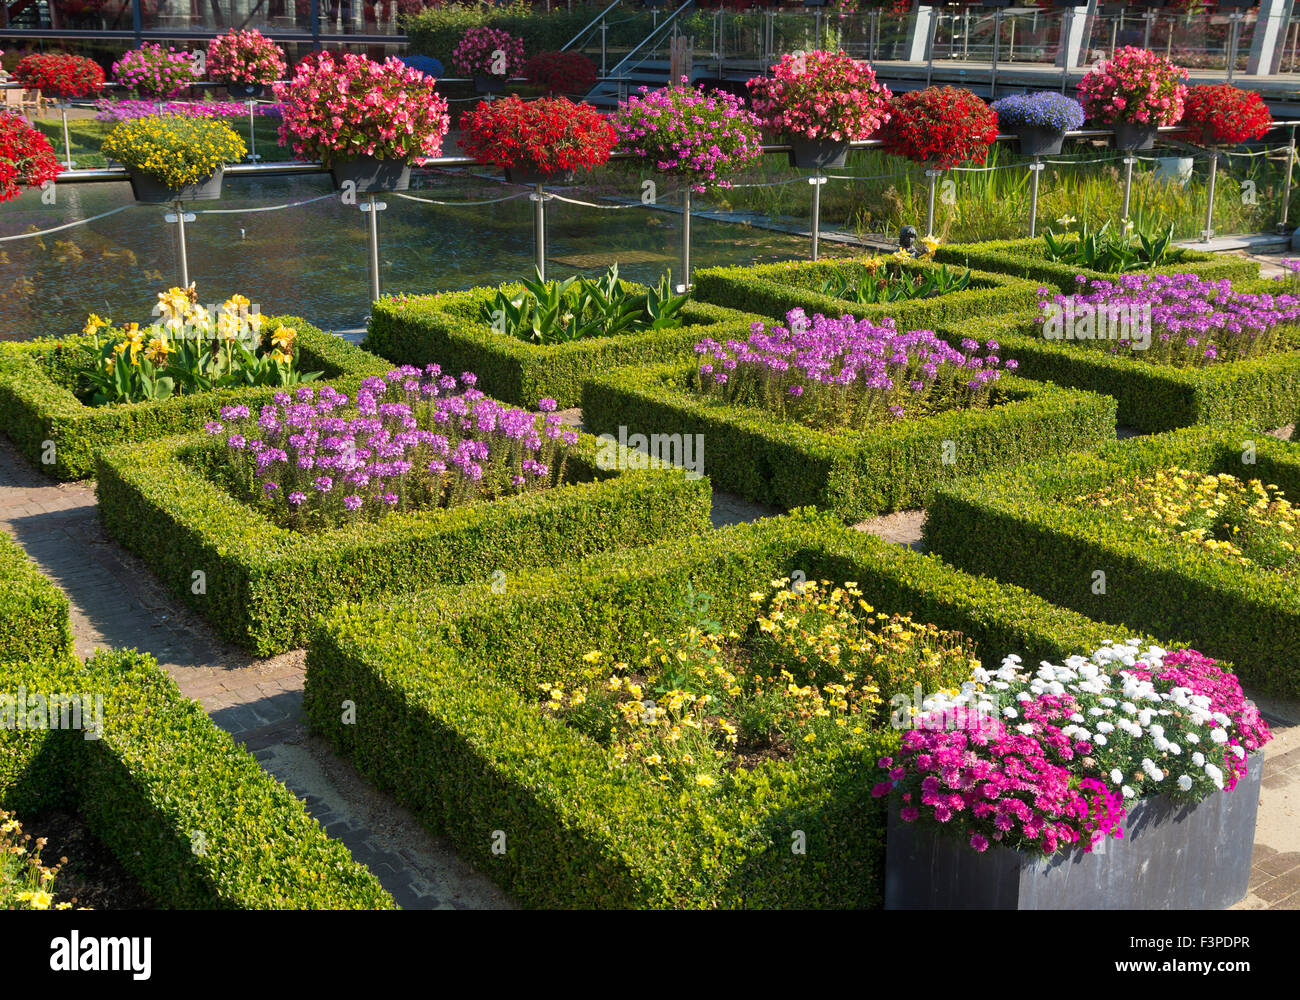 blooming flowers in a beautiful garden with square cut hedges - Stock Image